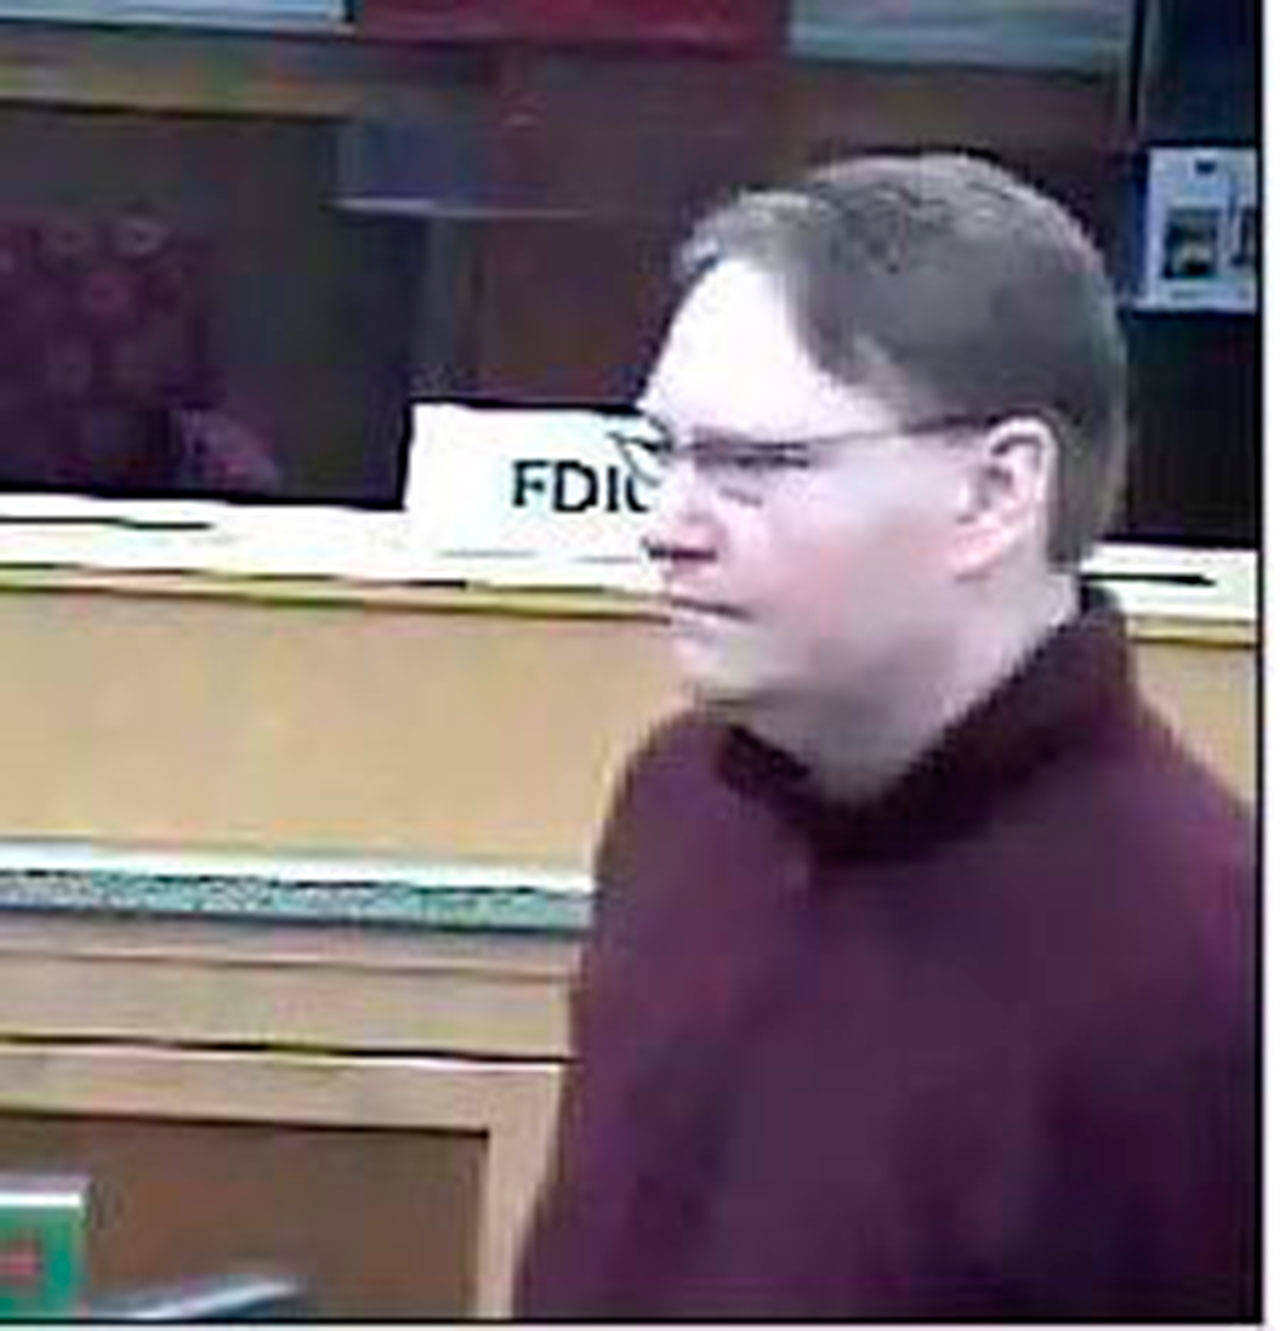 Security photos show a man who robbed a Wells Fargo on Thursday in Lynnwood. Police believe he struck a U.S. Bank on Monday, too. (Lynnwood Police Department)